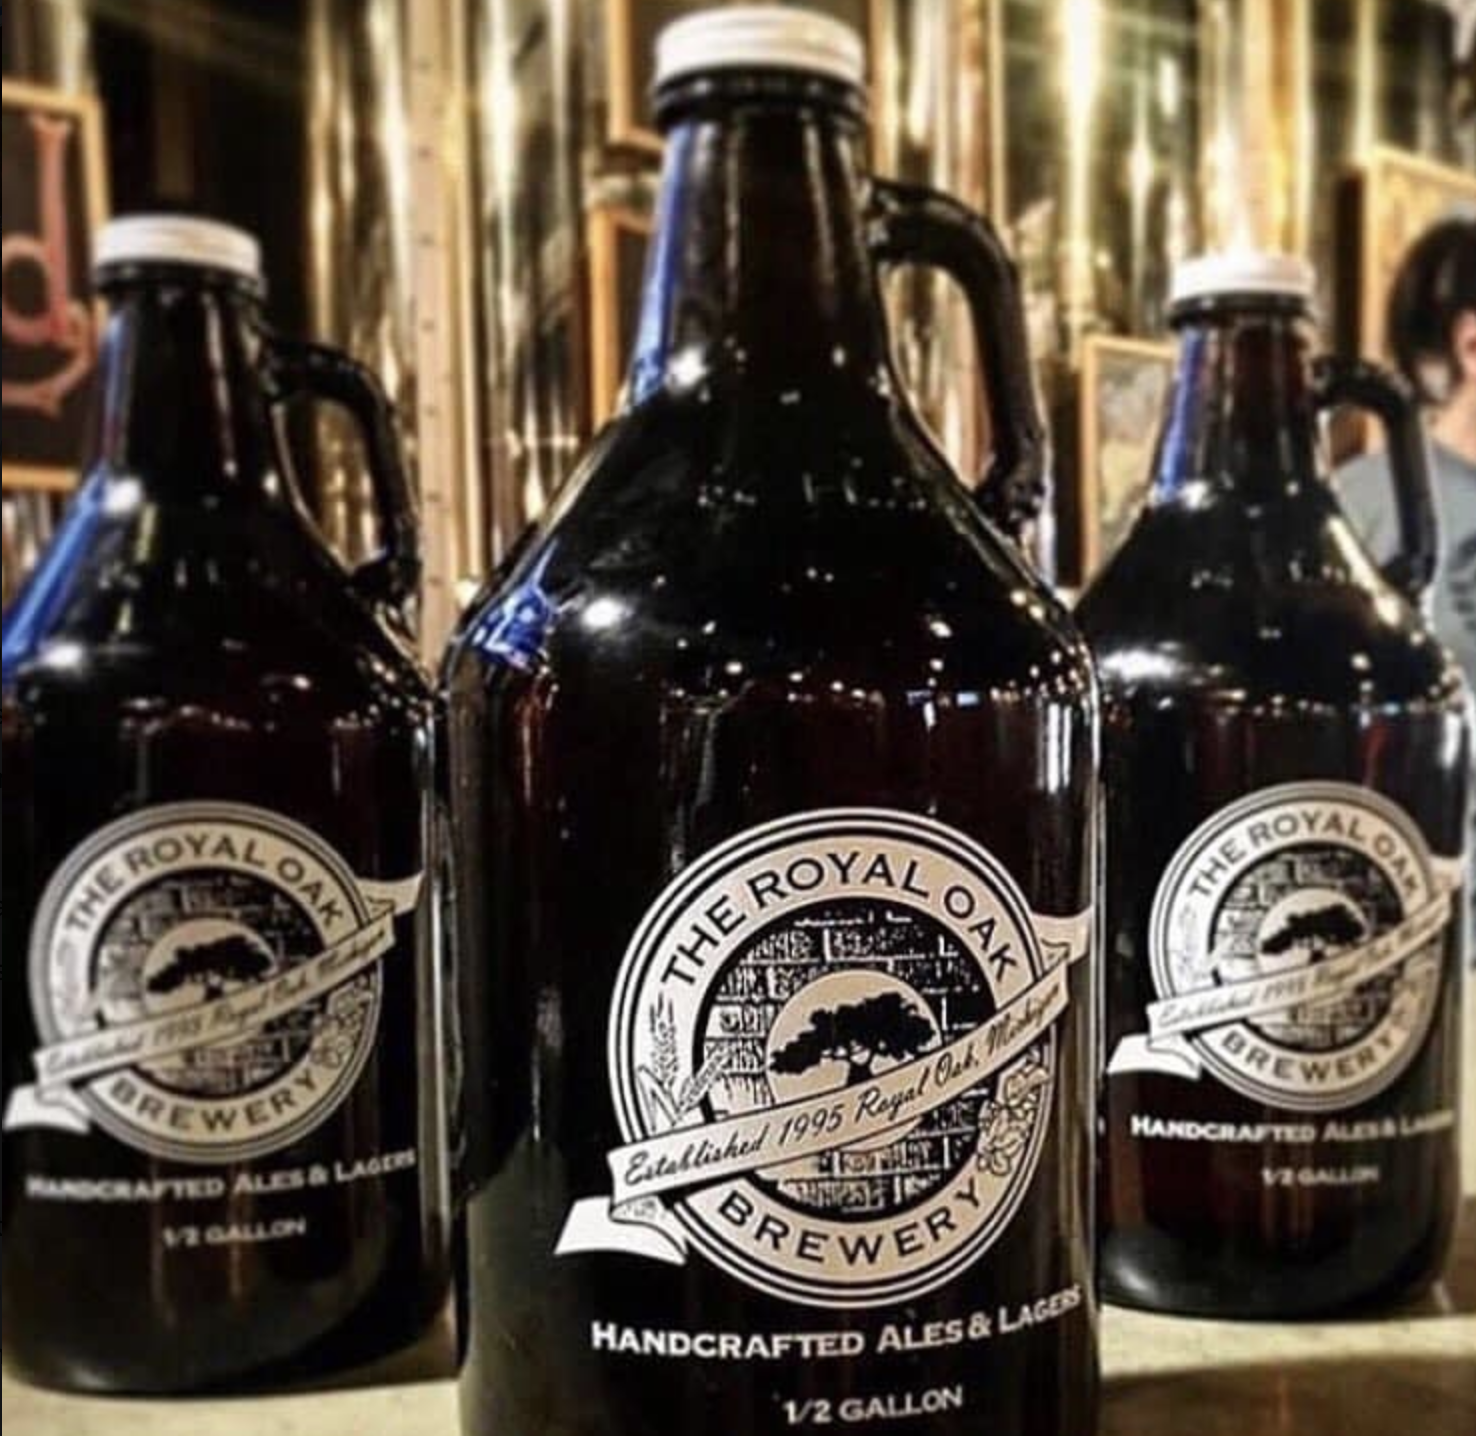 Royal Oak Brewery to temporarily shut down for renovations